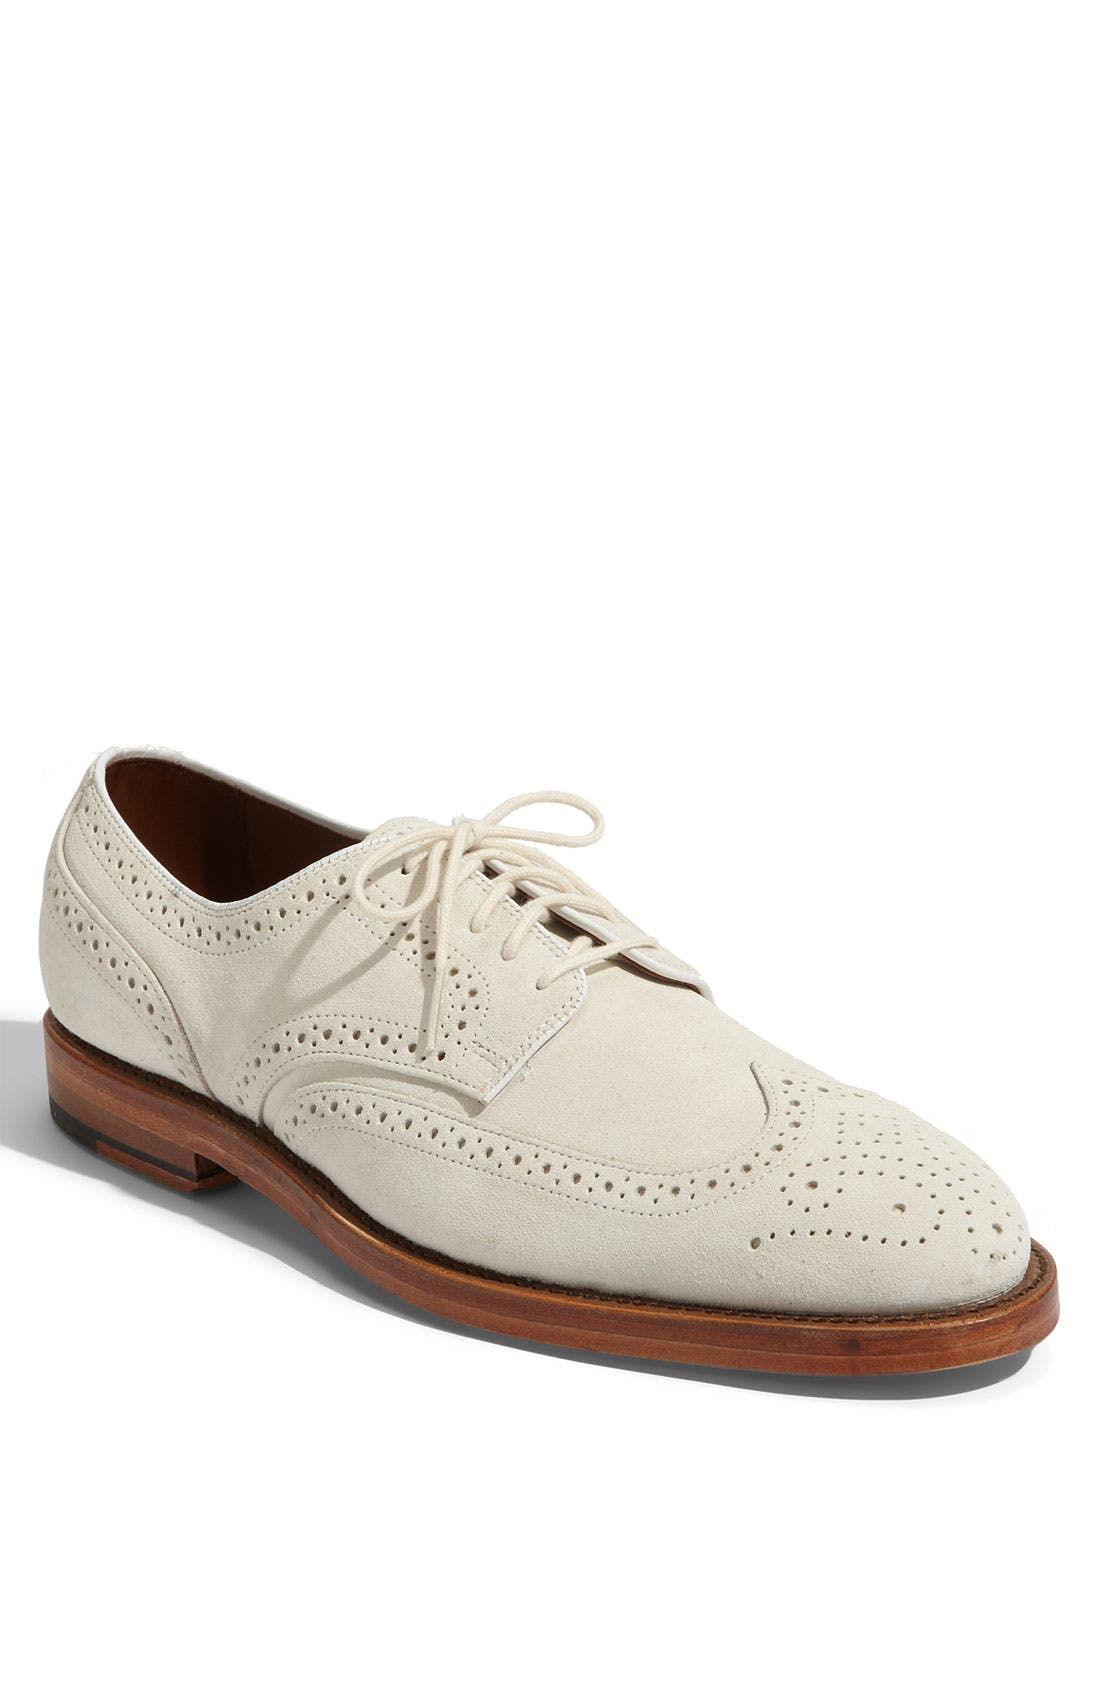 Alternate Image 1 Selected - Allen Edmonds 'Player' Oxford (Online Only)